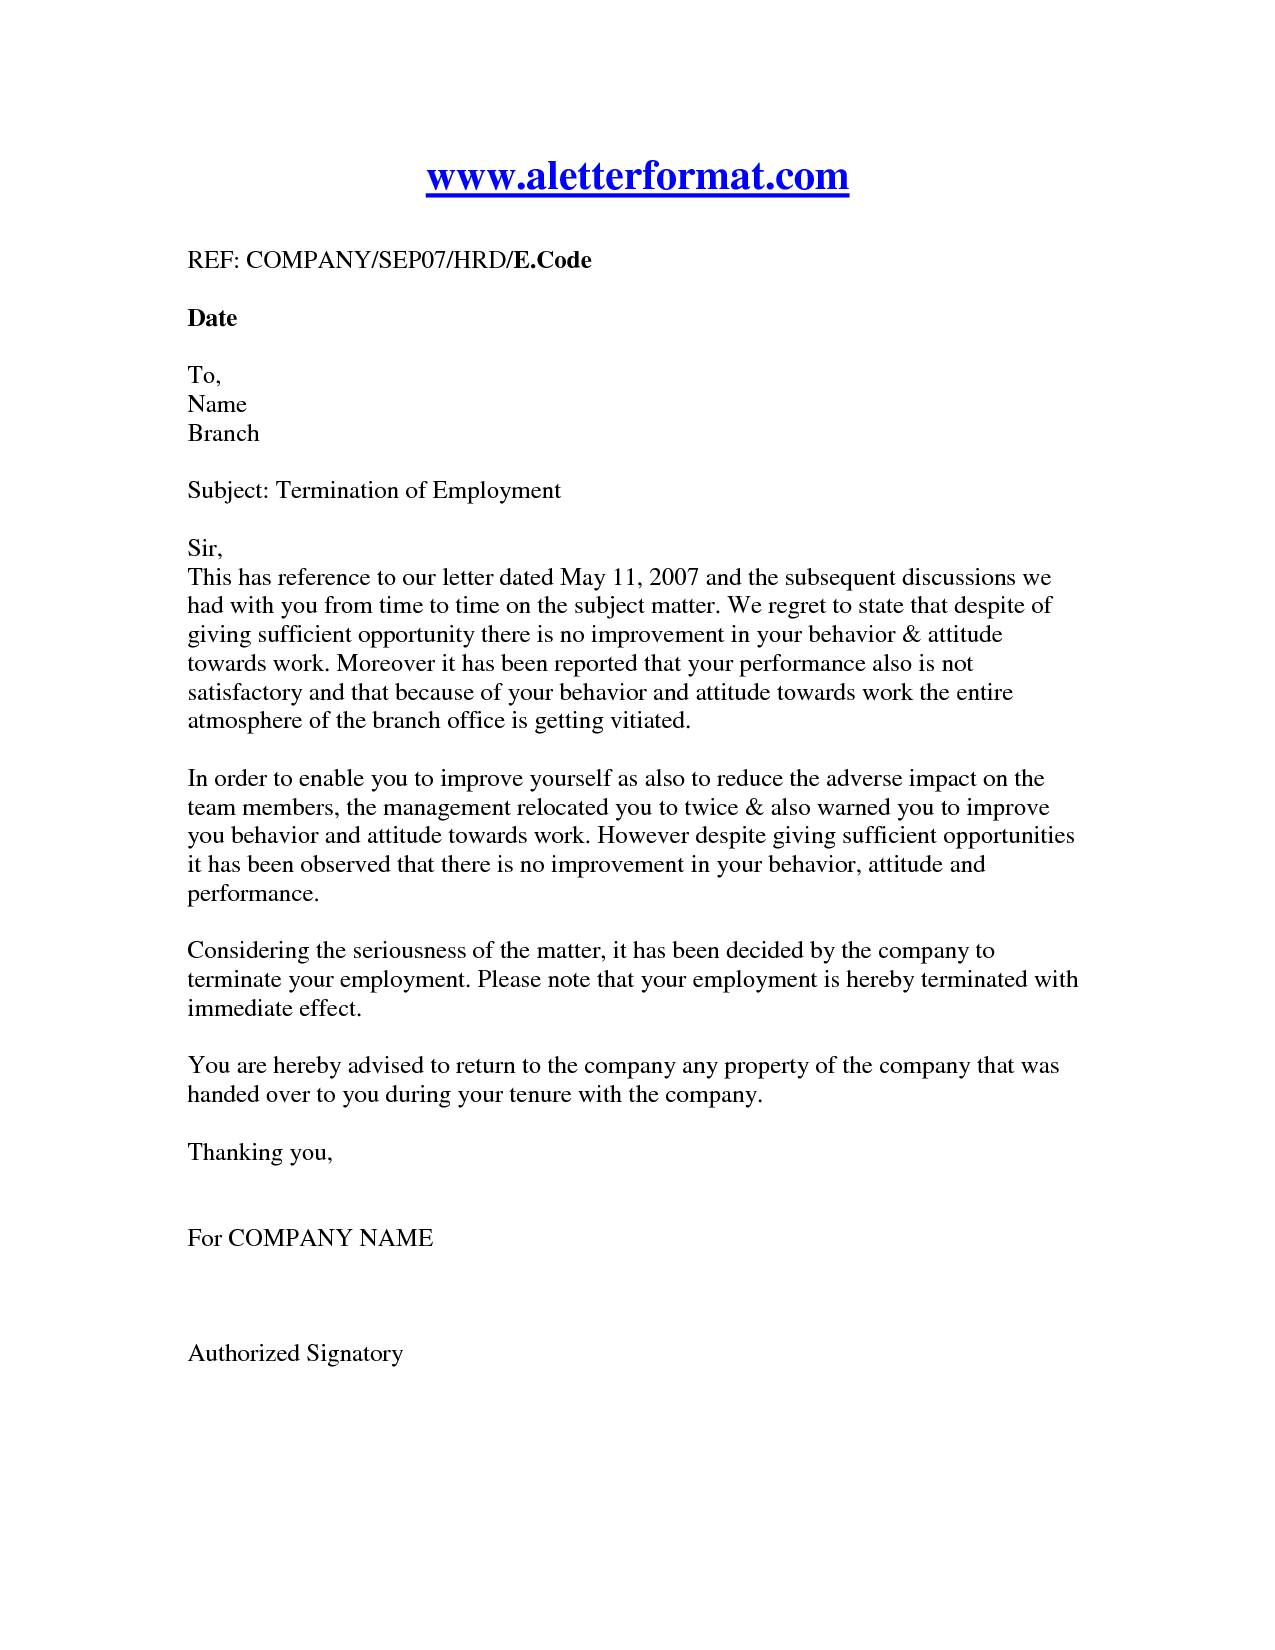 Sample Termination Of Employment Letter